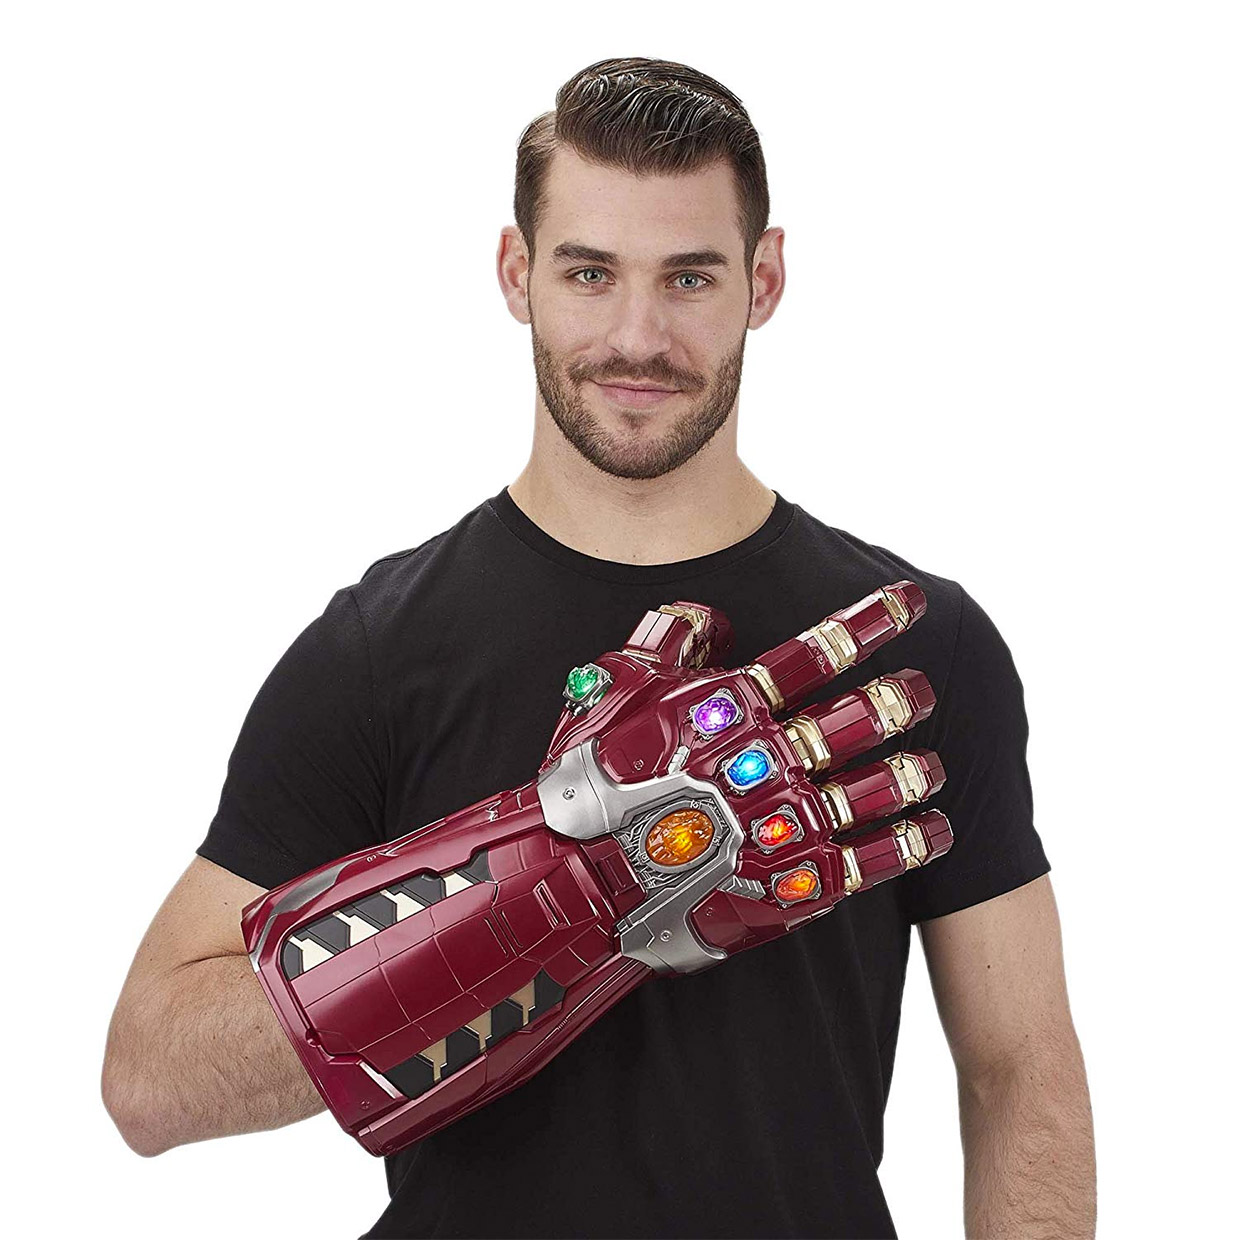 Hasbro Is Selling Iron Man's Power Gauntlet: The Other Power